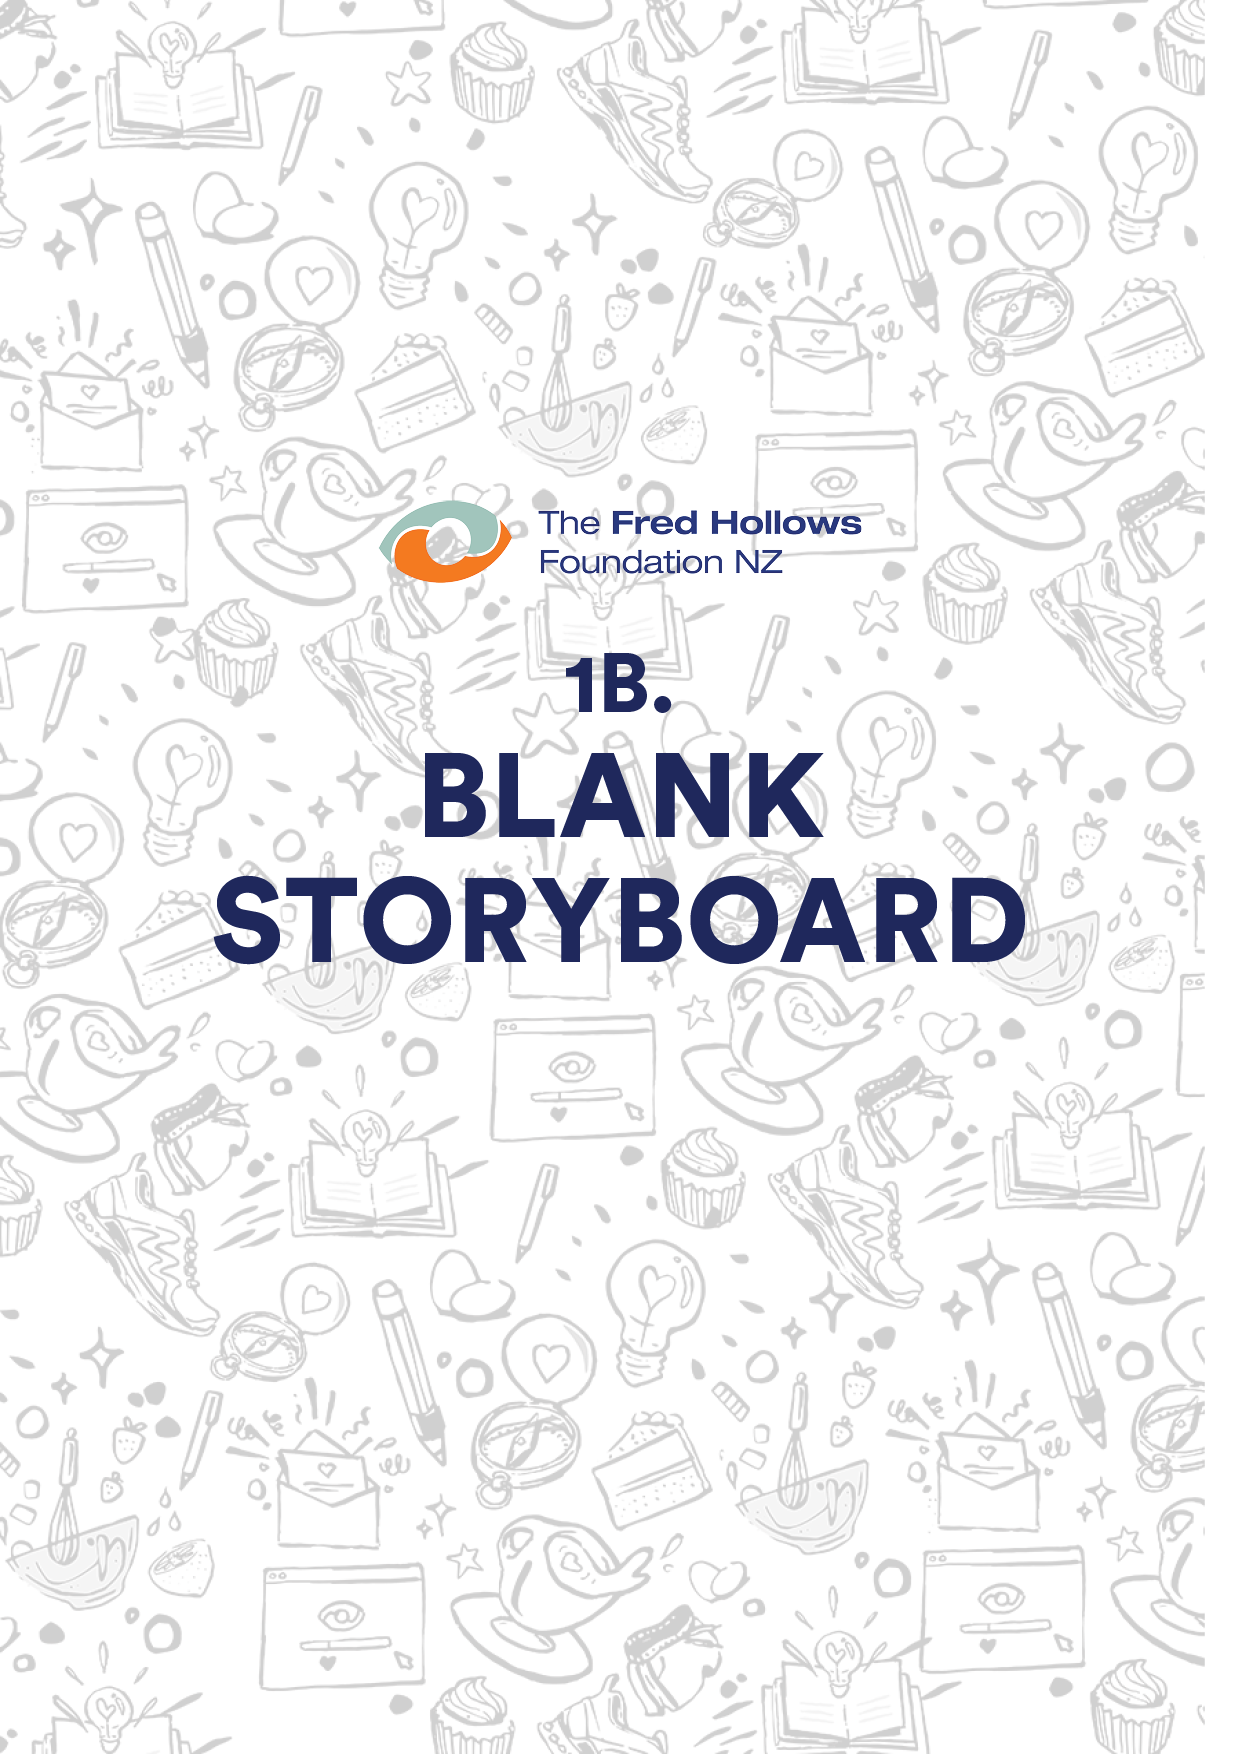 1b. Teacher resource - blank storyboard.docx